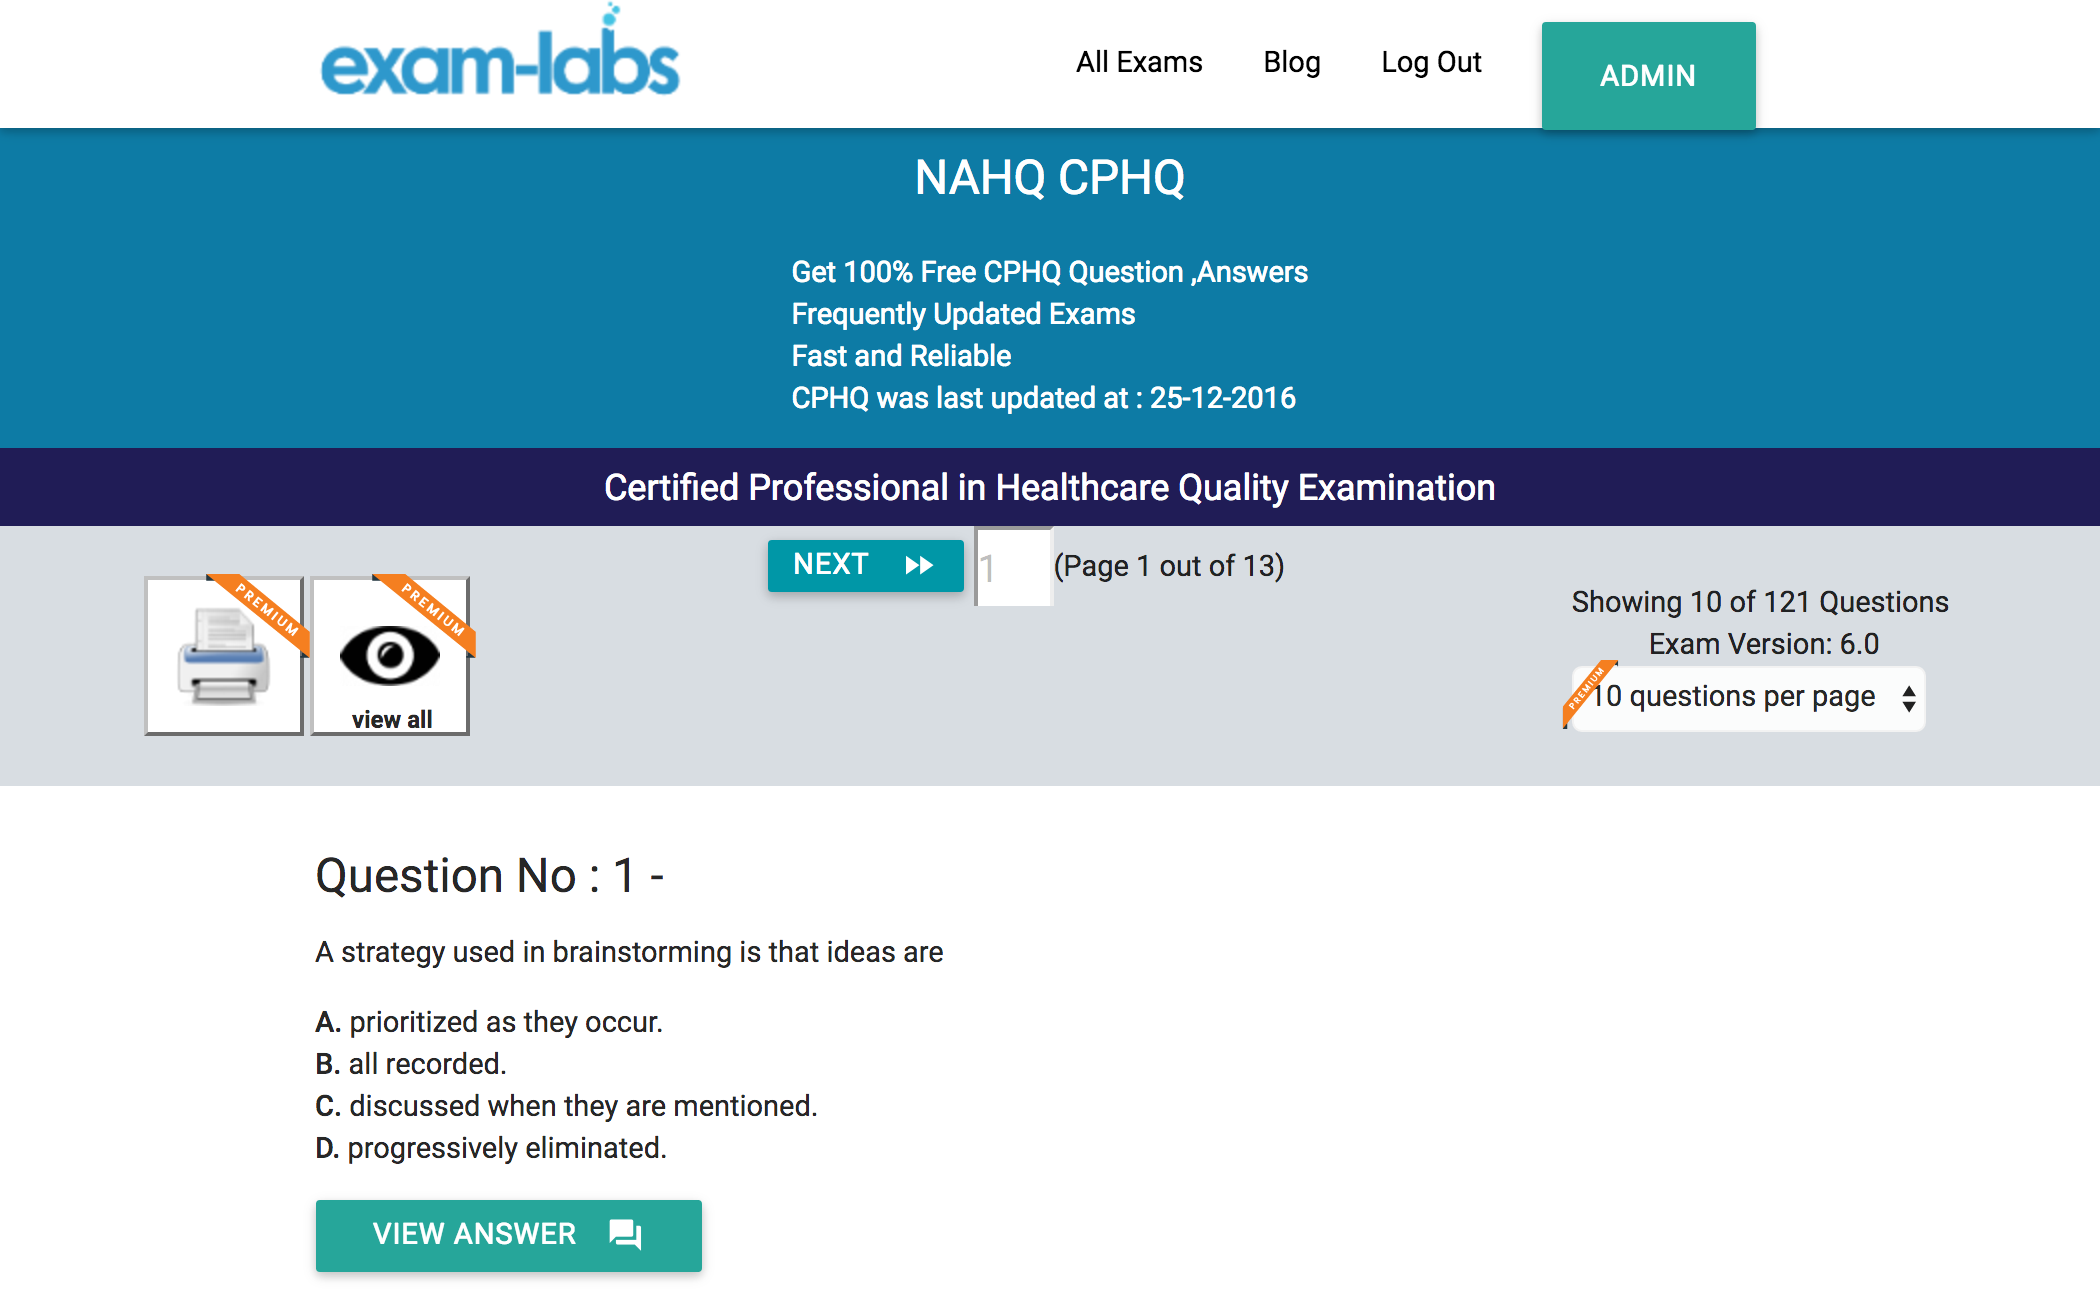 NAHQ CPHQ Certified Professional in Healthcare Quality Examination Exam